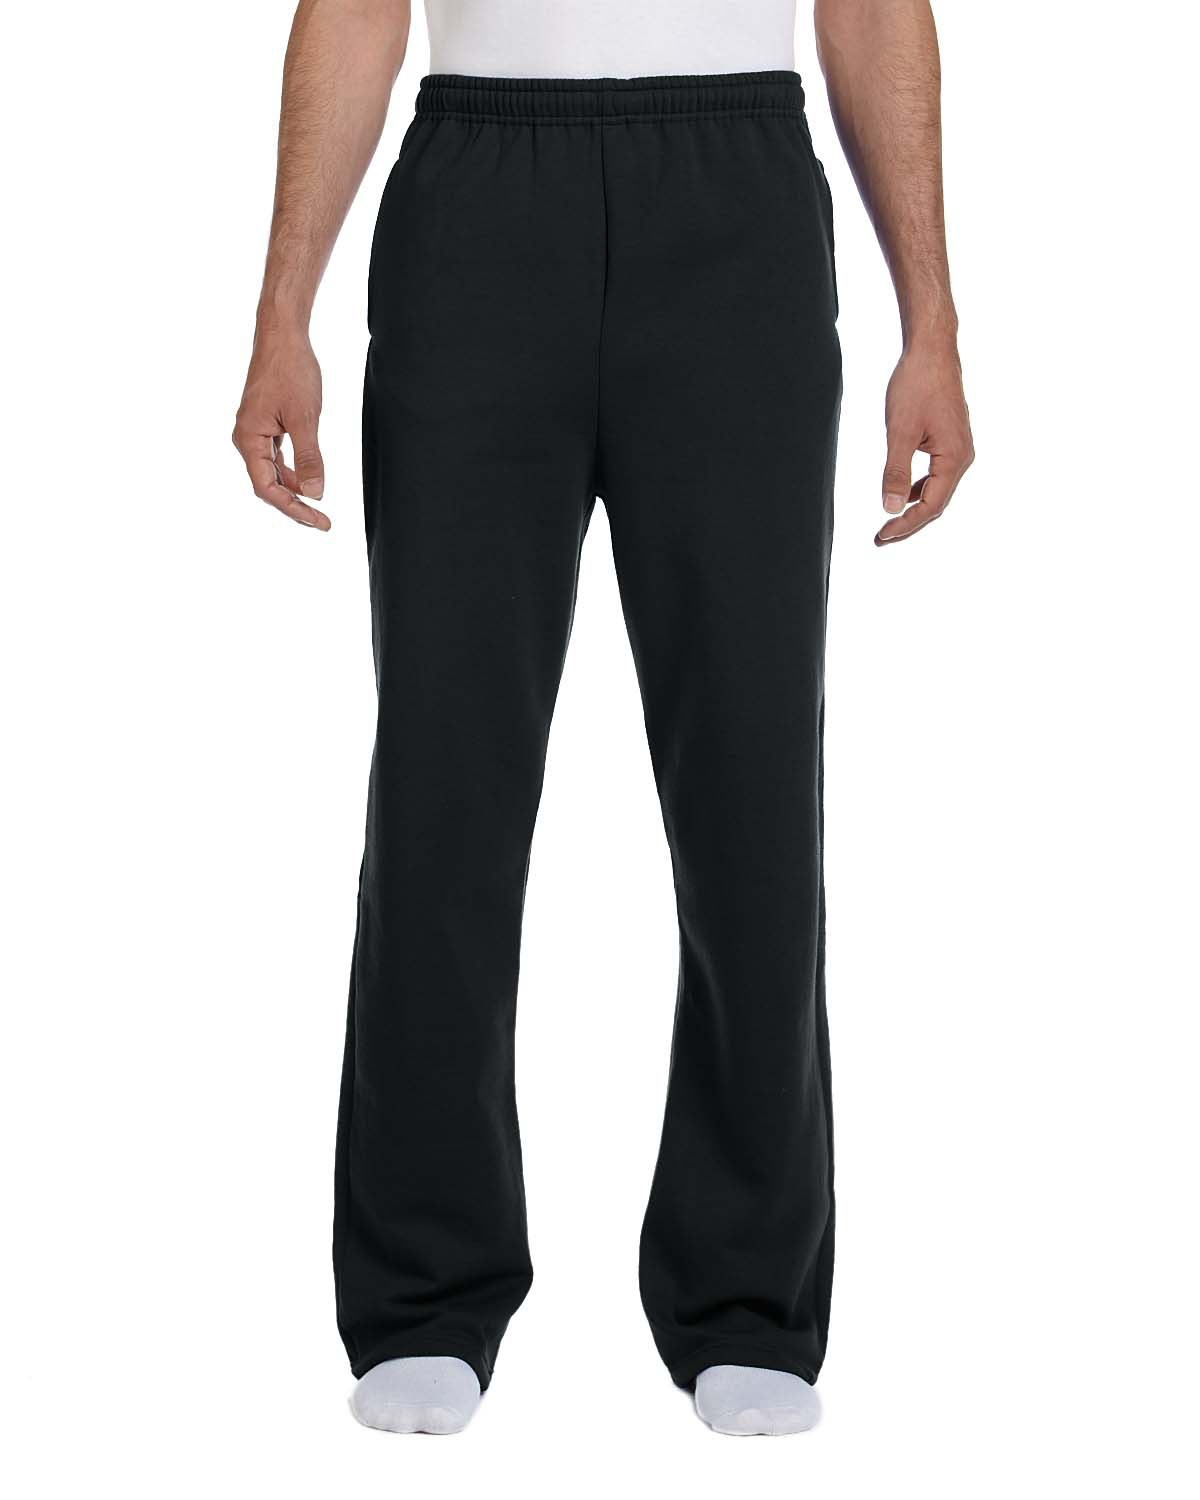 Jerzees 974MP  50/50 Fleece Open-Bottom Sweatpants